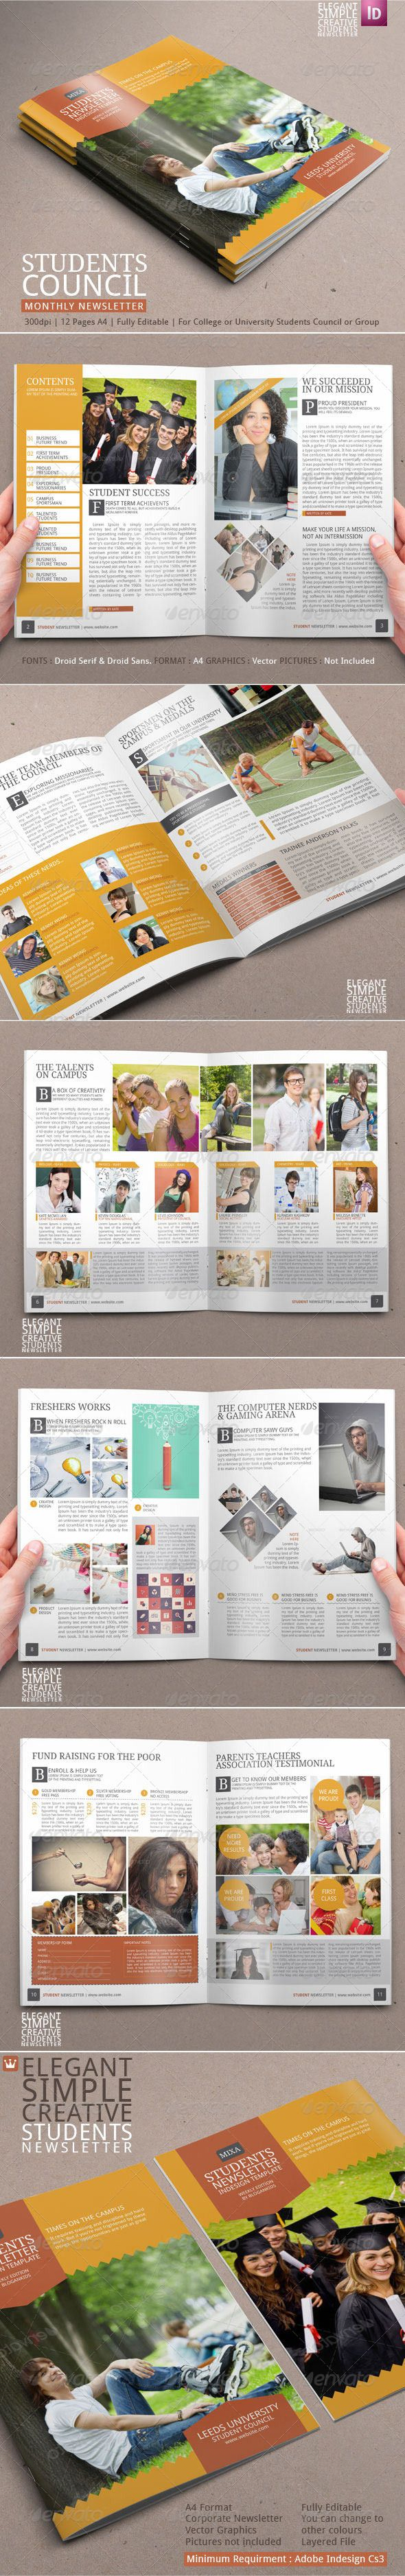 Best Indesign Images On   Editorial Design Newsletter